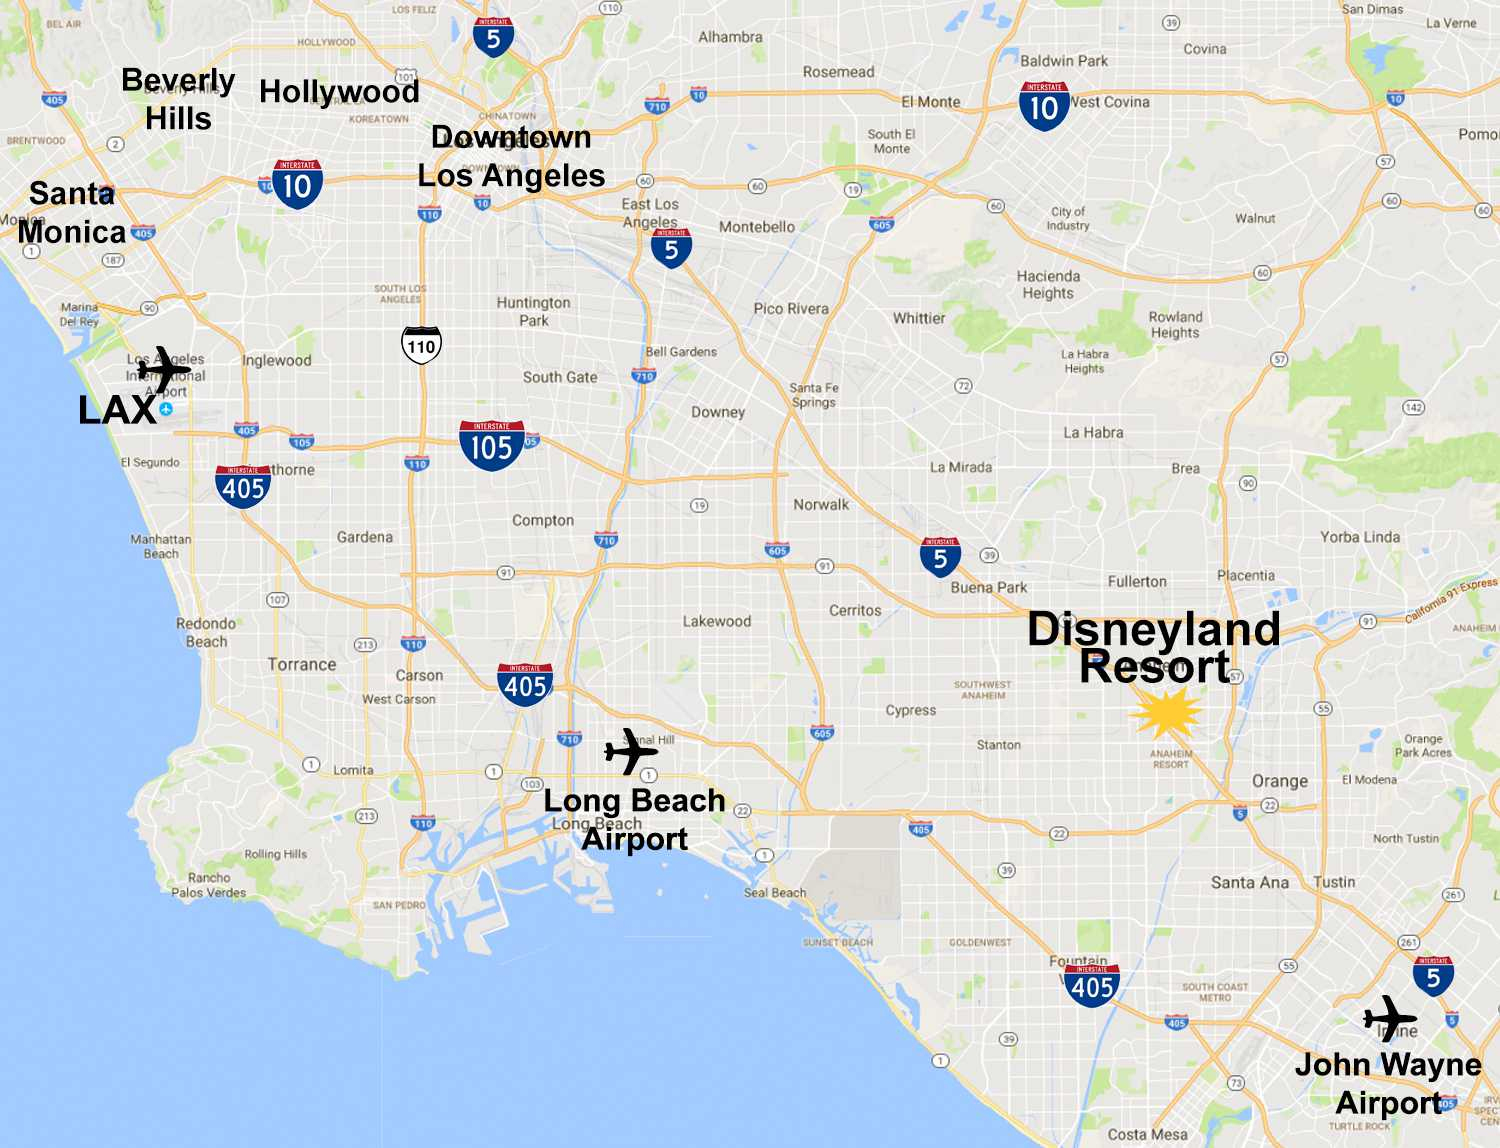 Maps Of The Disneyland Resort - Map Showing Anaheim California